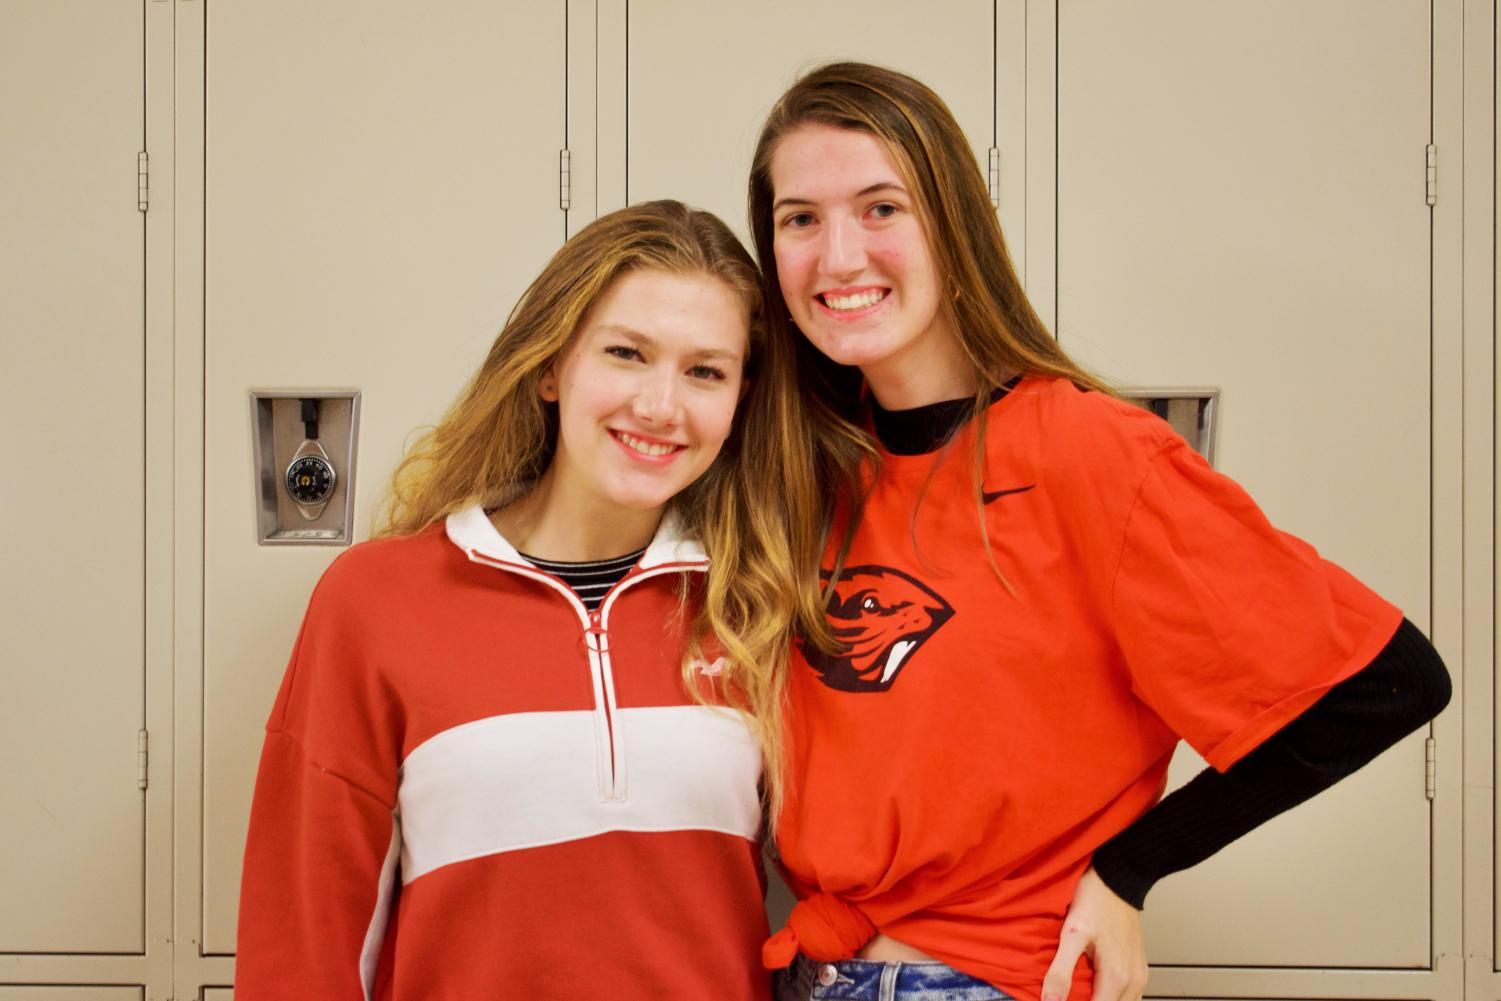 Juniors+Gretchen+Pauli+and+Mallory+Middendorff+dress+in+orange+to+represent+the+class+of+2021+on+class+colors+day.